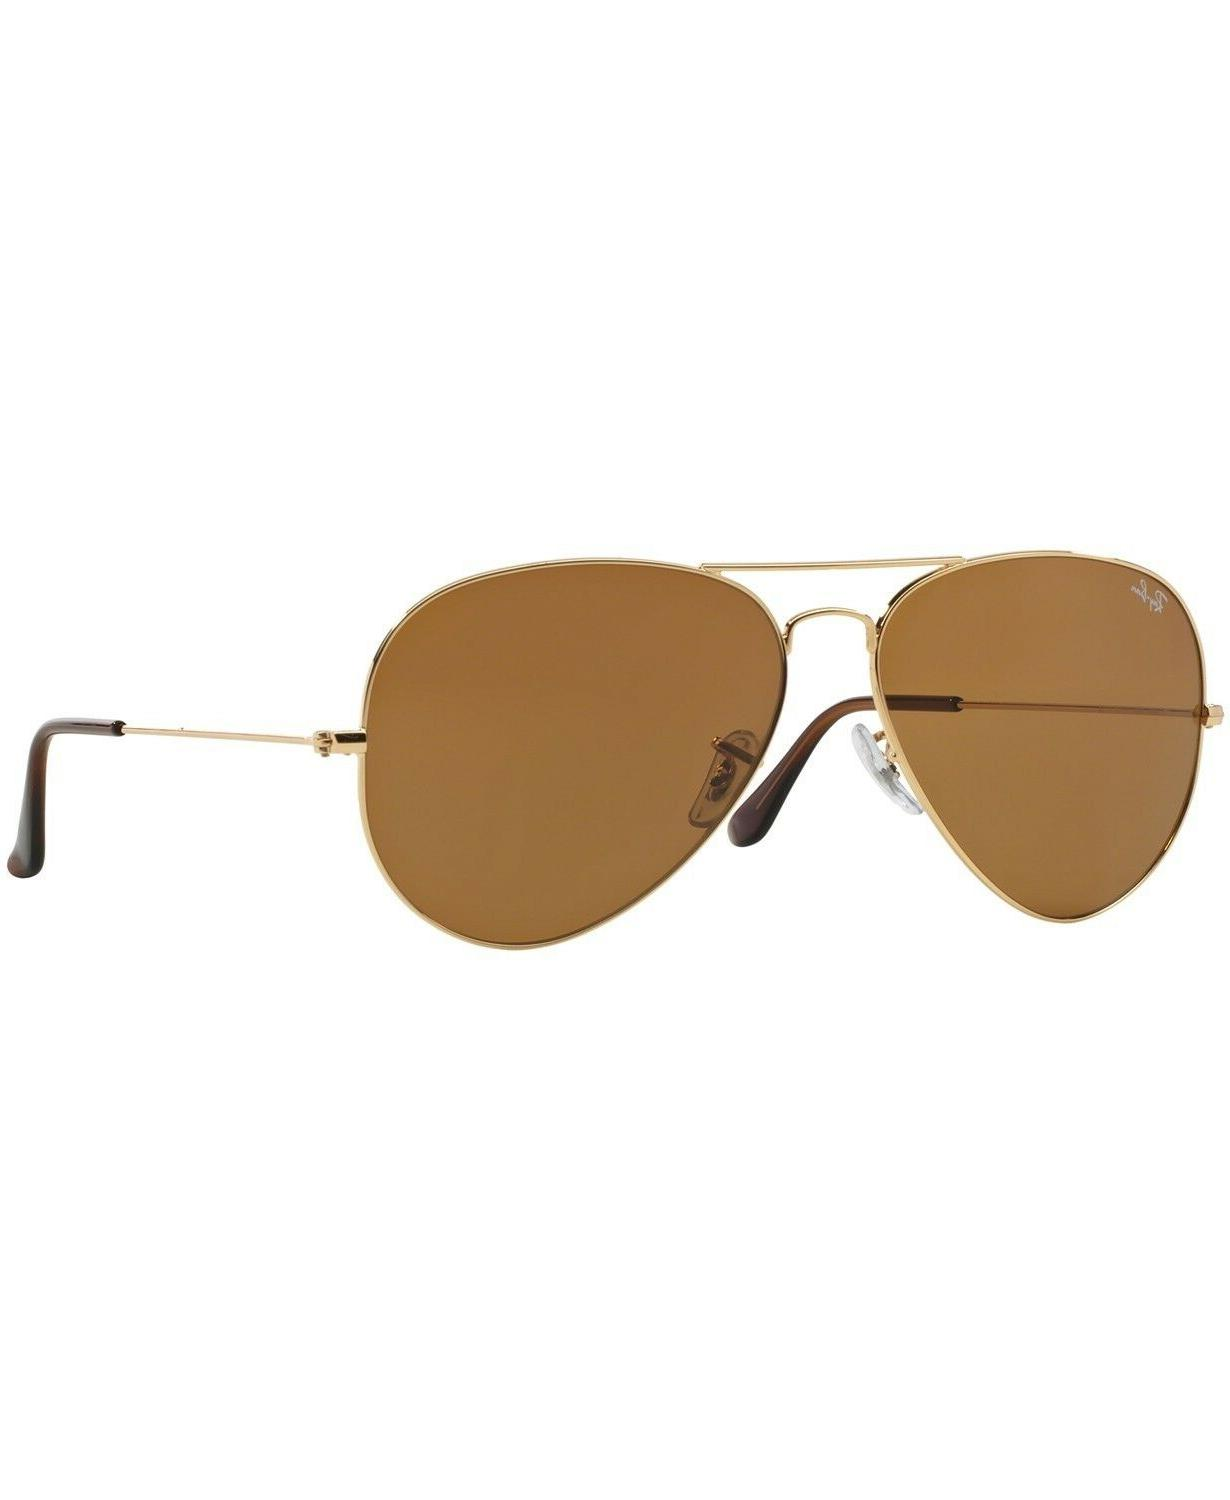 New Ray Ban Sunglasses Original AVIATOR Outdoor RB3025 001 5